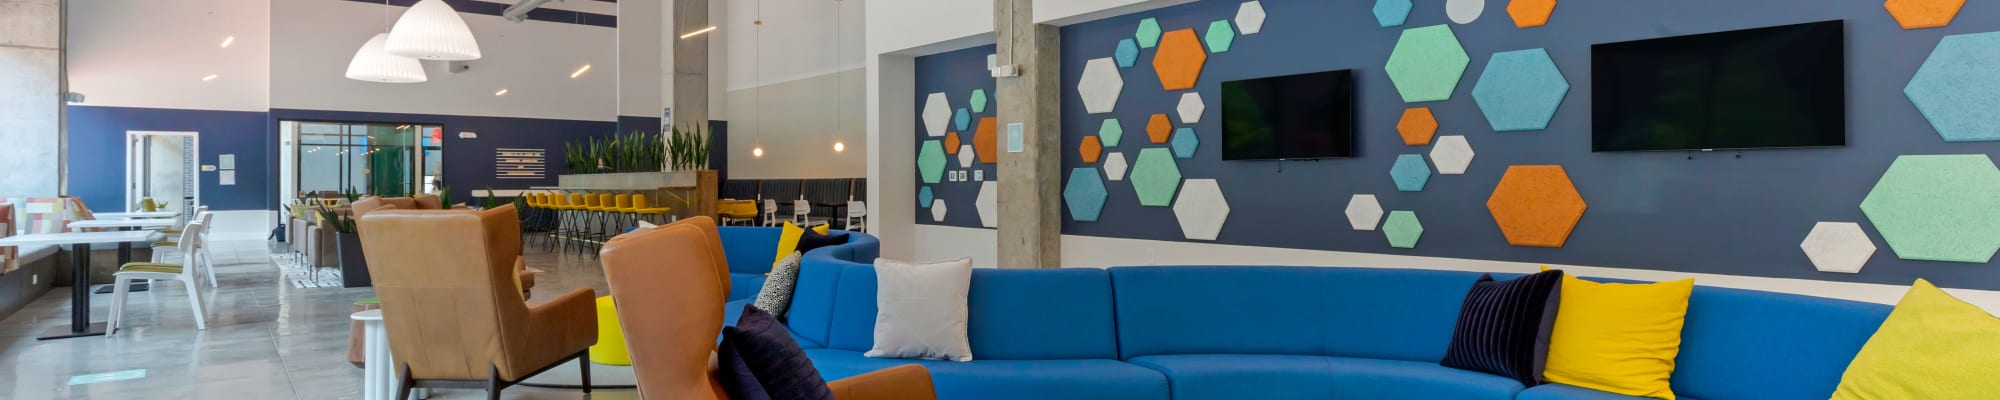 Video Tours at UNCOMMON Raleigh in Raleigh, North Carolina